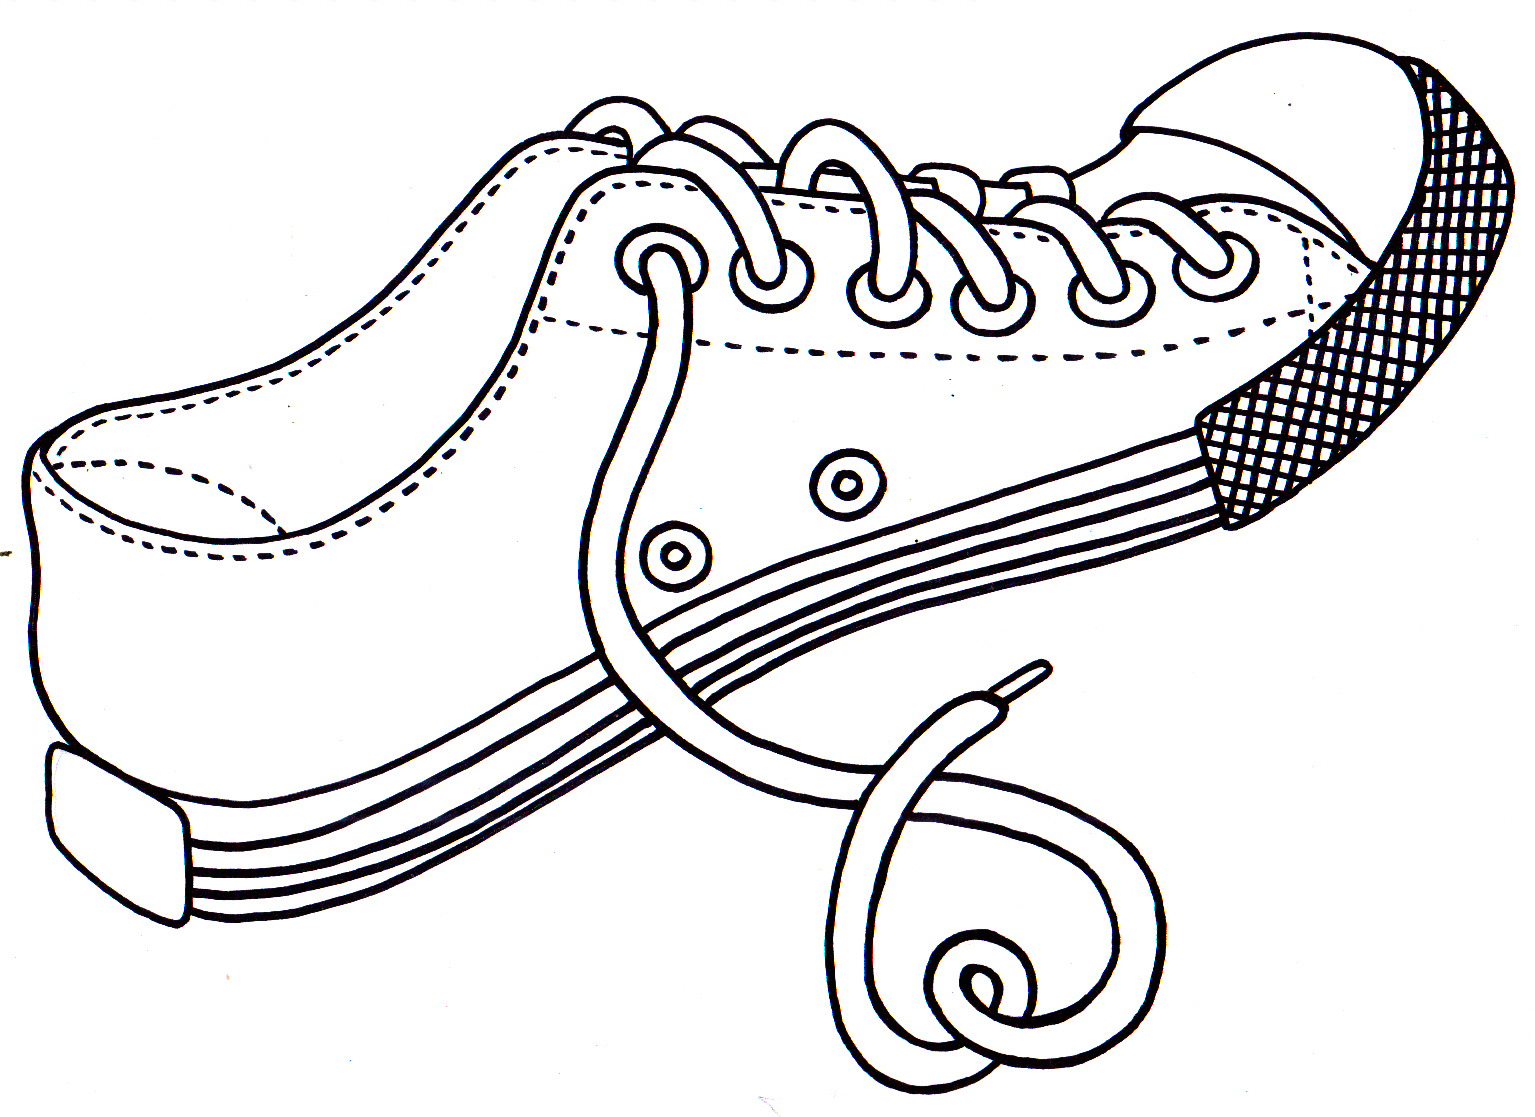 Printable coloring pages shoe coloring pages for Coloring pages shoes printable